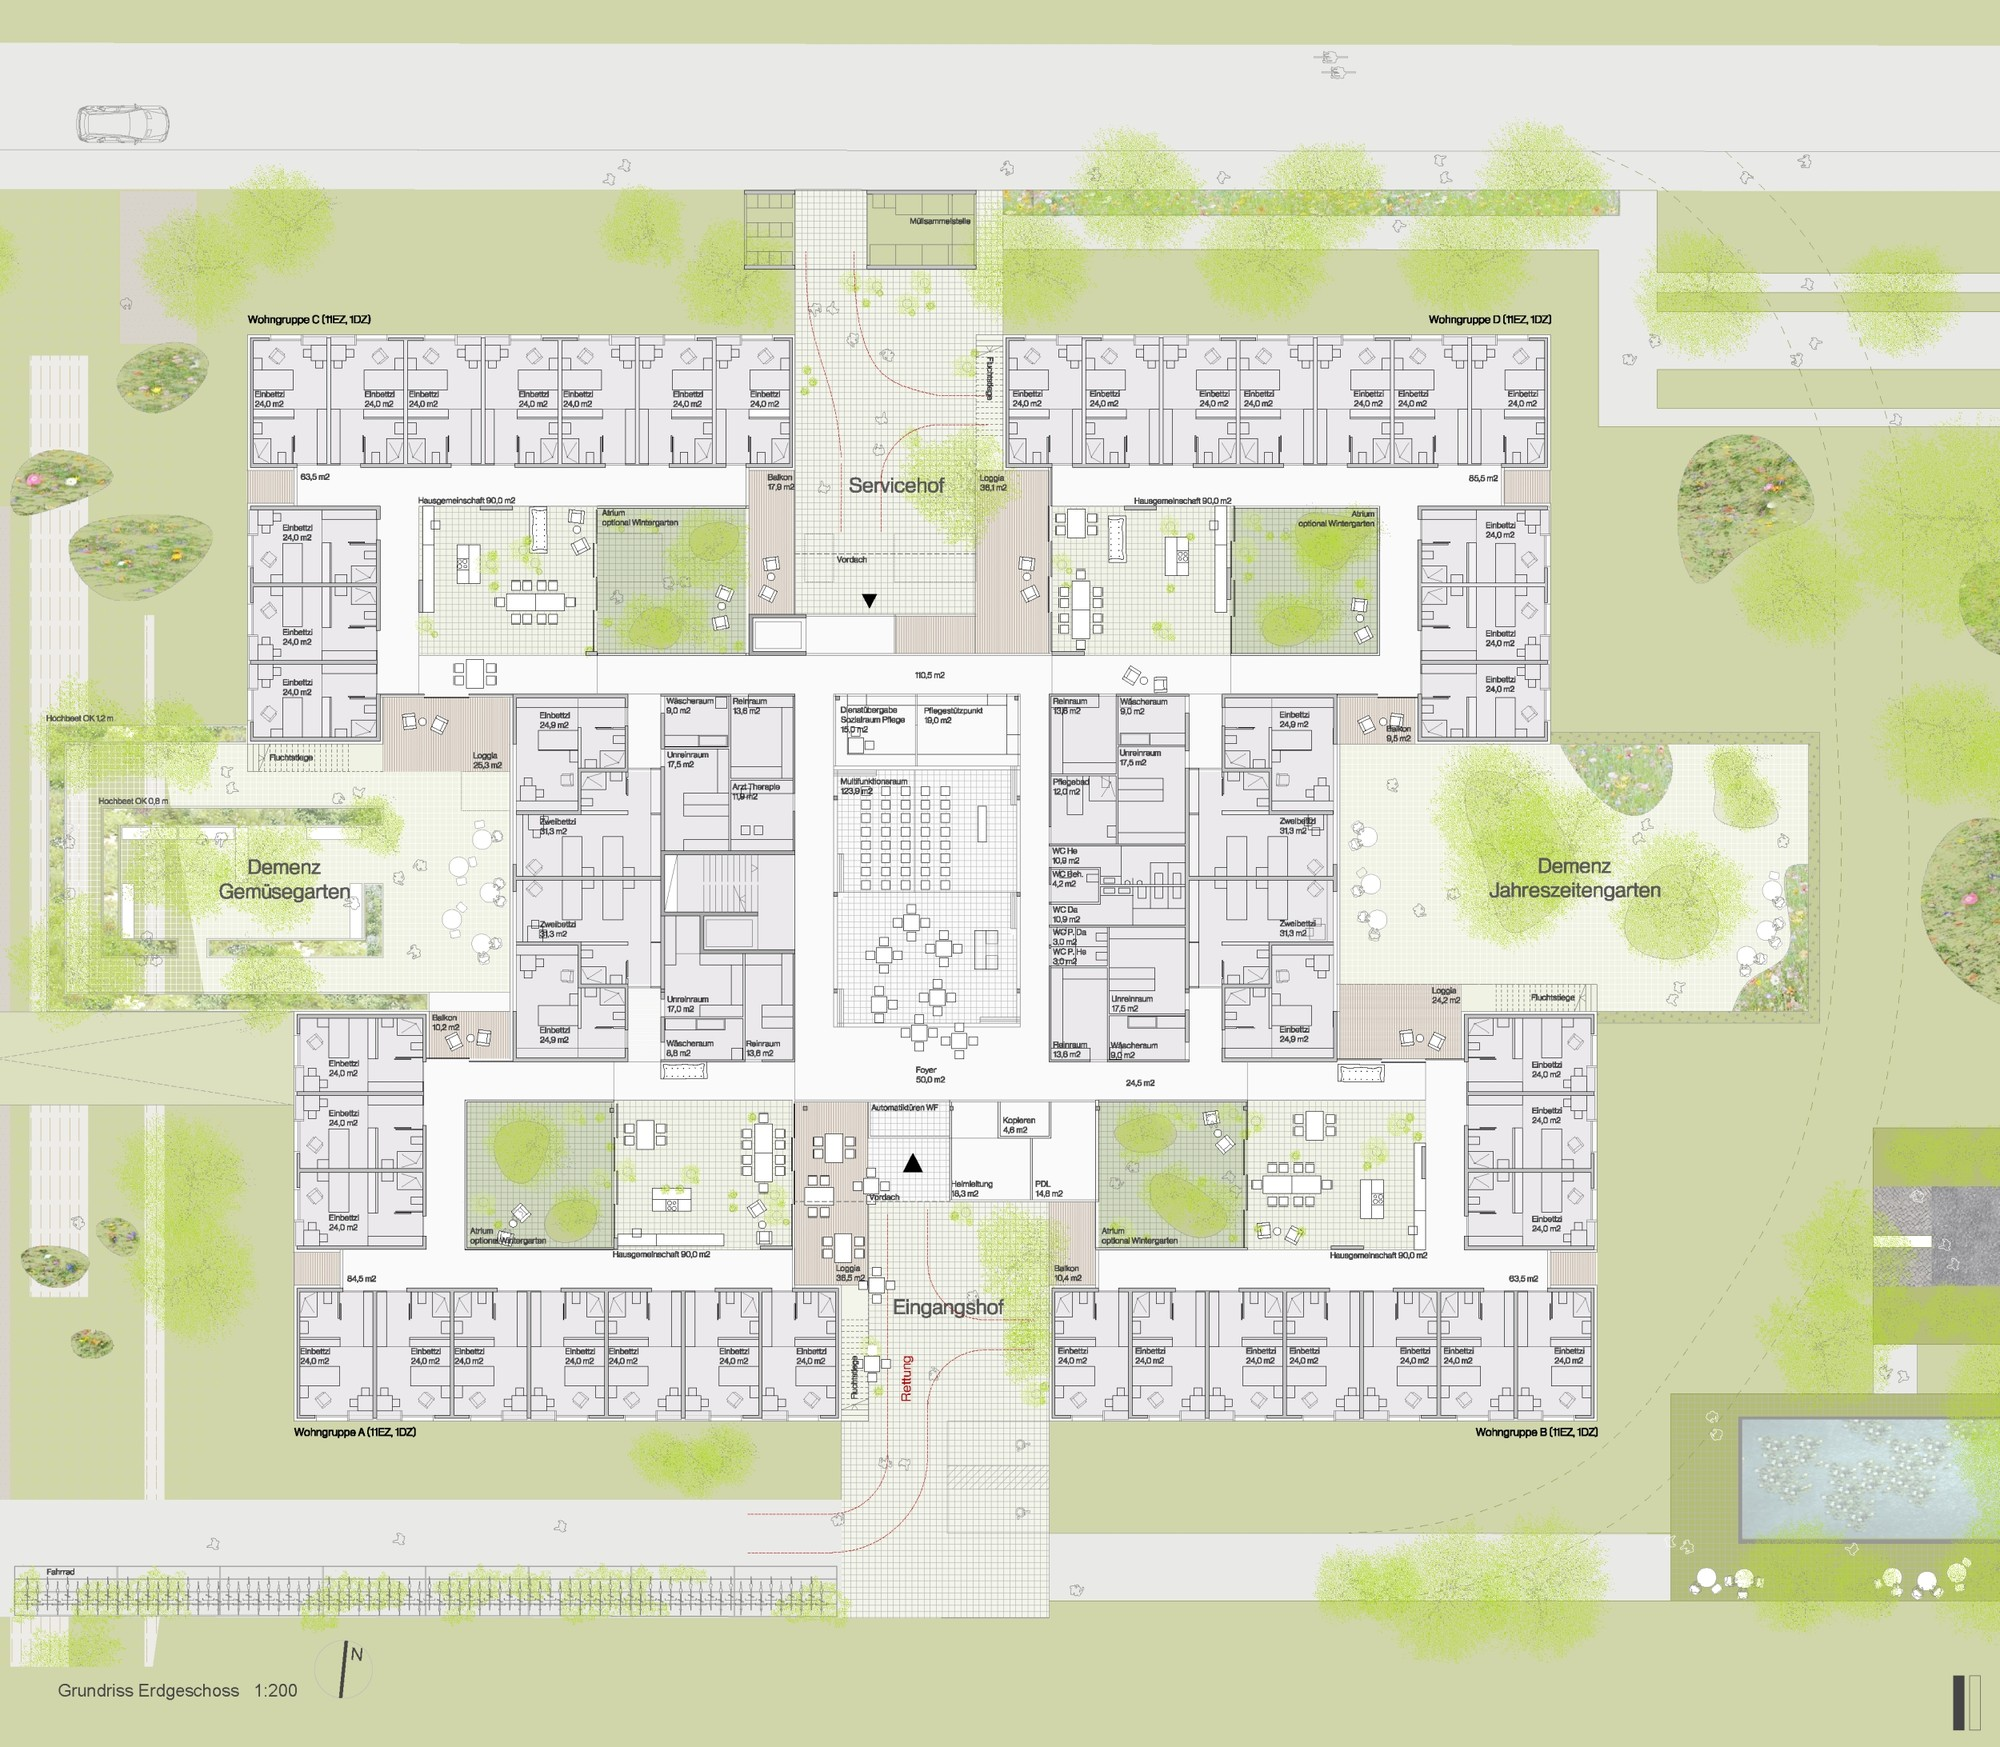 Lar de idosos peter rosegger dietger wissounig for Retirement village house plans